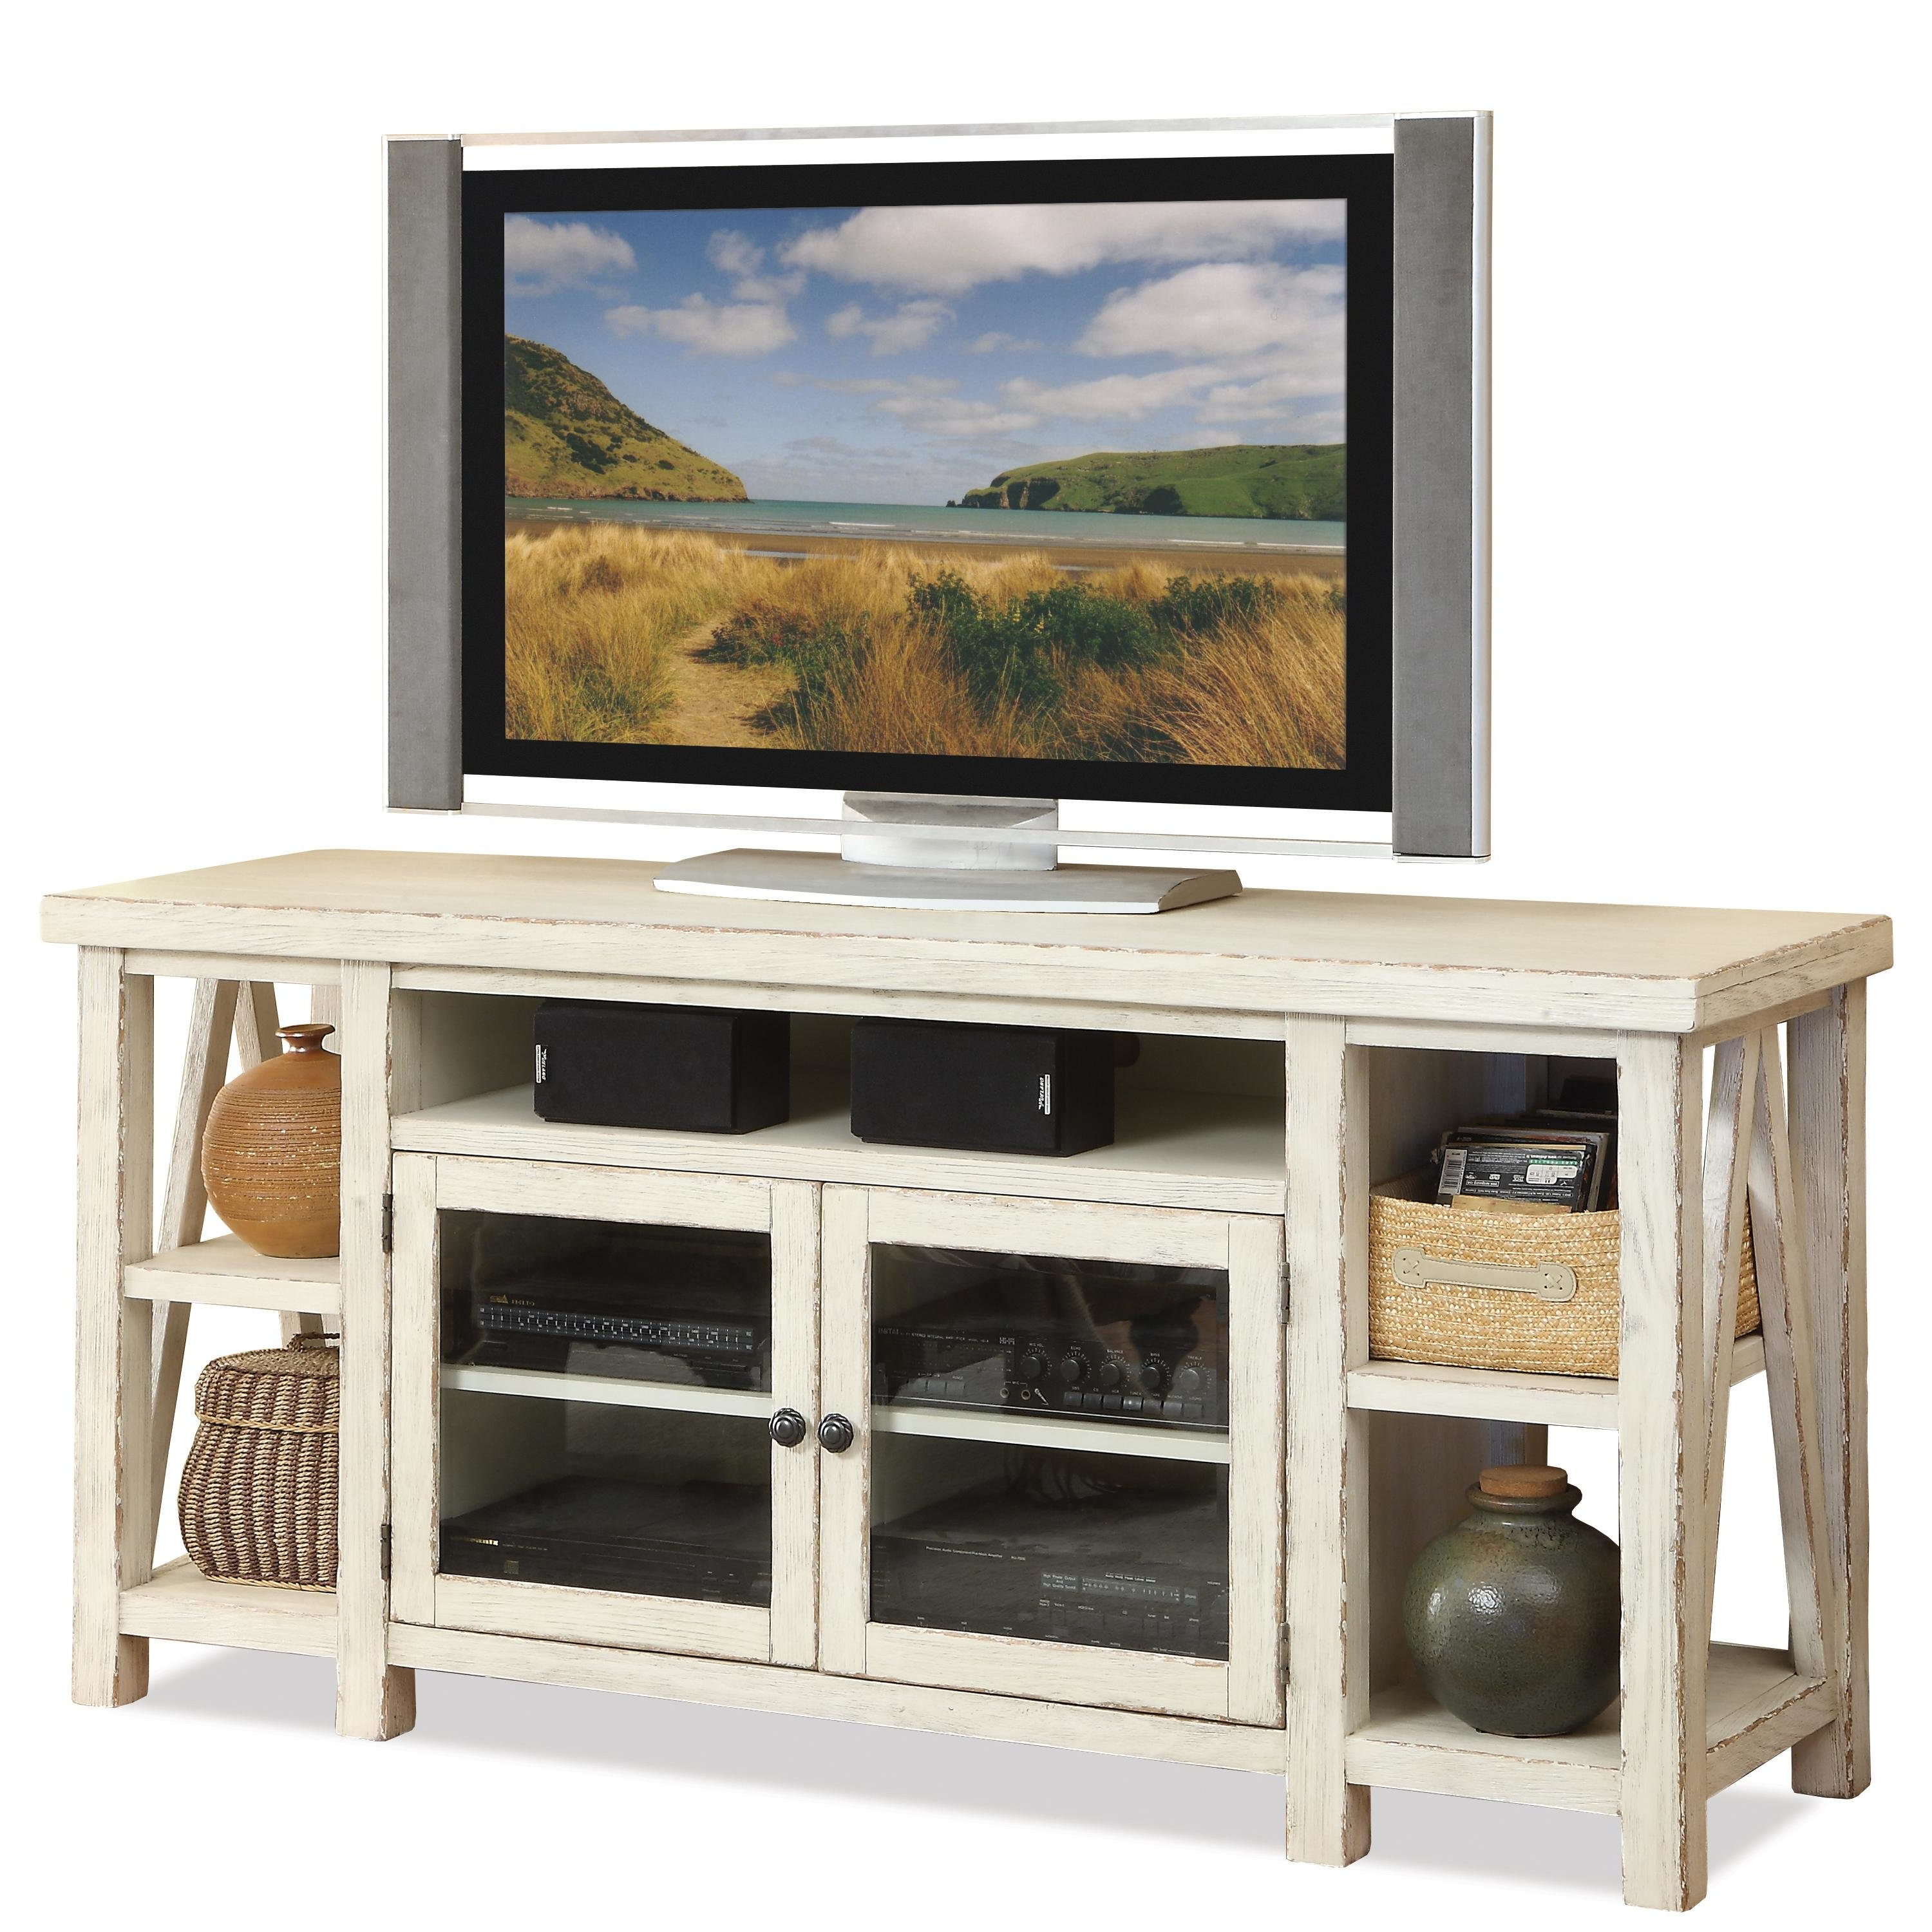 70 Inch Tv Stands | Joss & Main Throughout Bale 82 Inch Tv Stands (View 11 of 20)